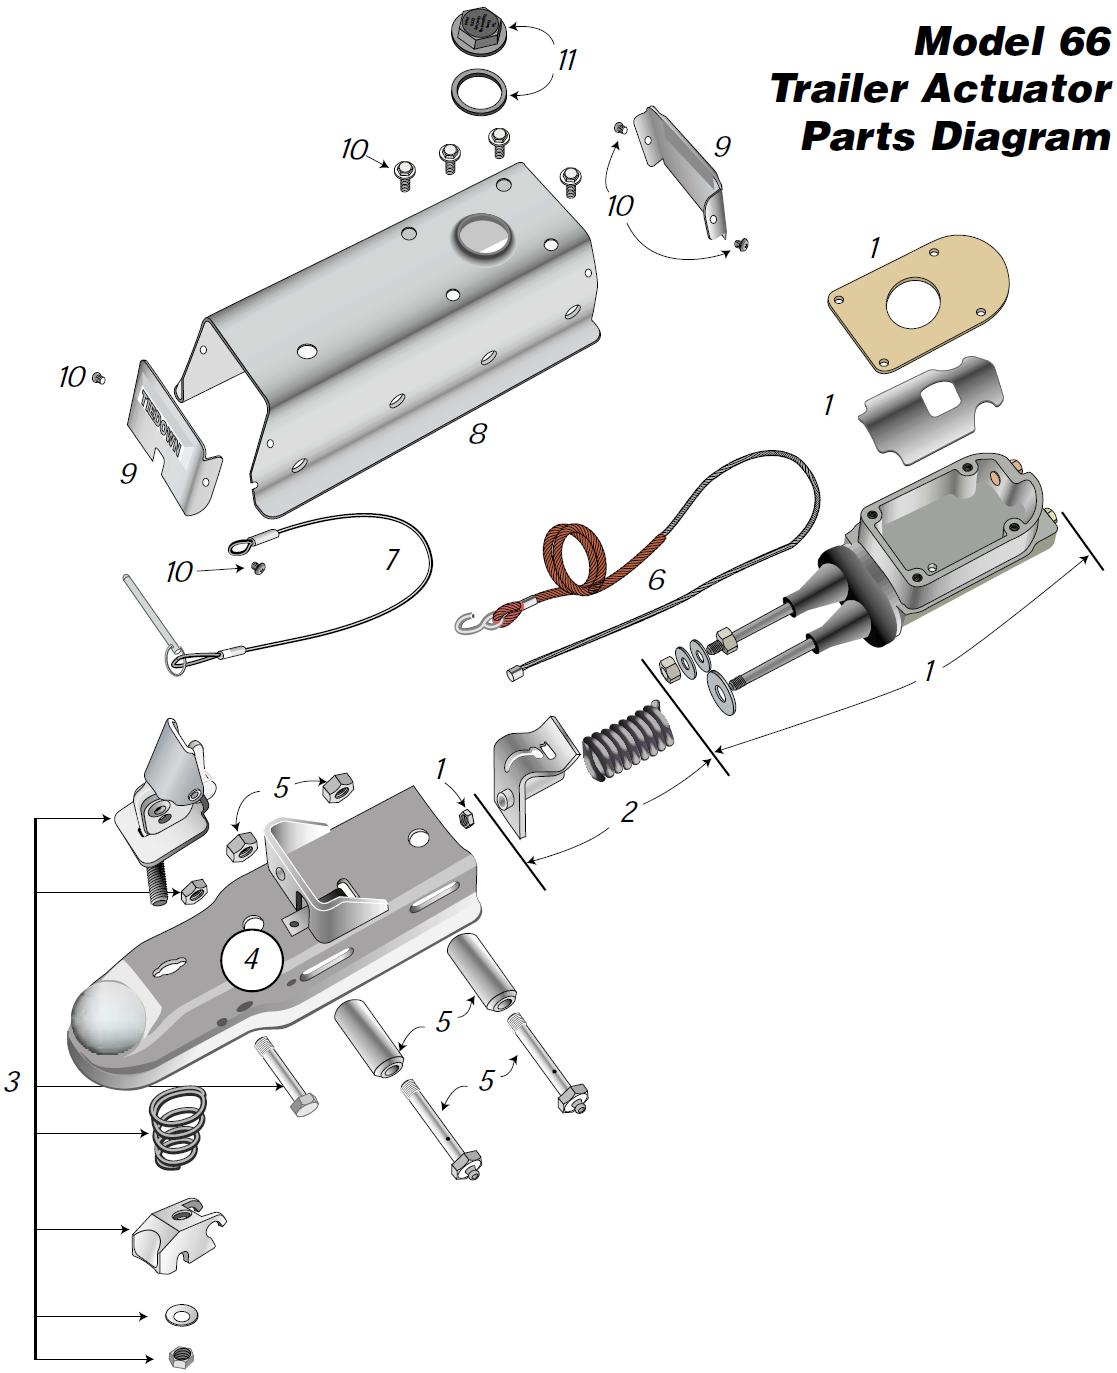 Dual Axle Trailer Brake Wiring Diagram | Wiring Library - Tandem Axle Trailer Brake Wiring Diagram